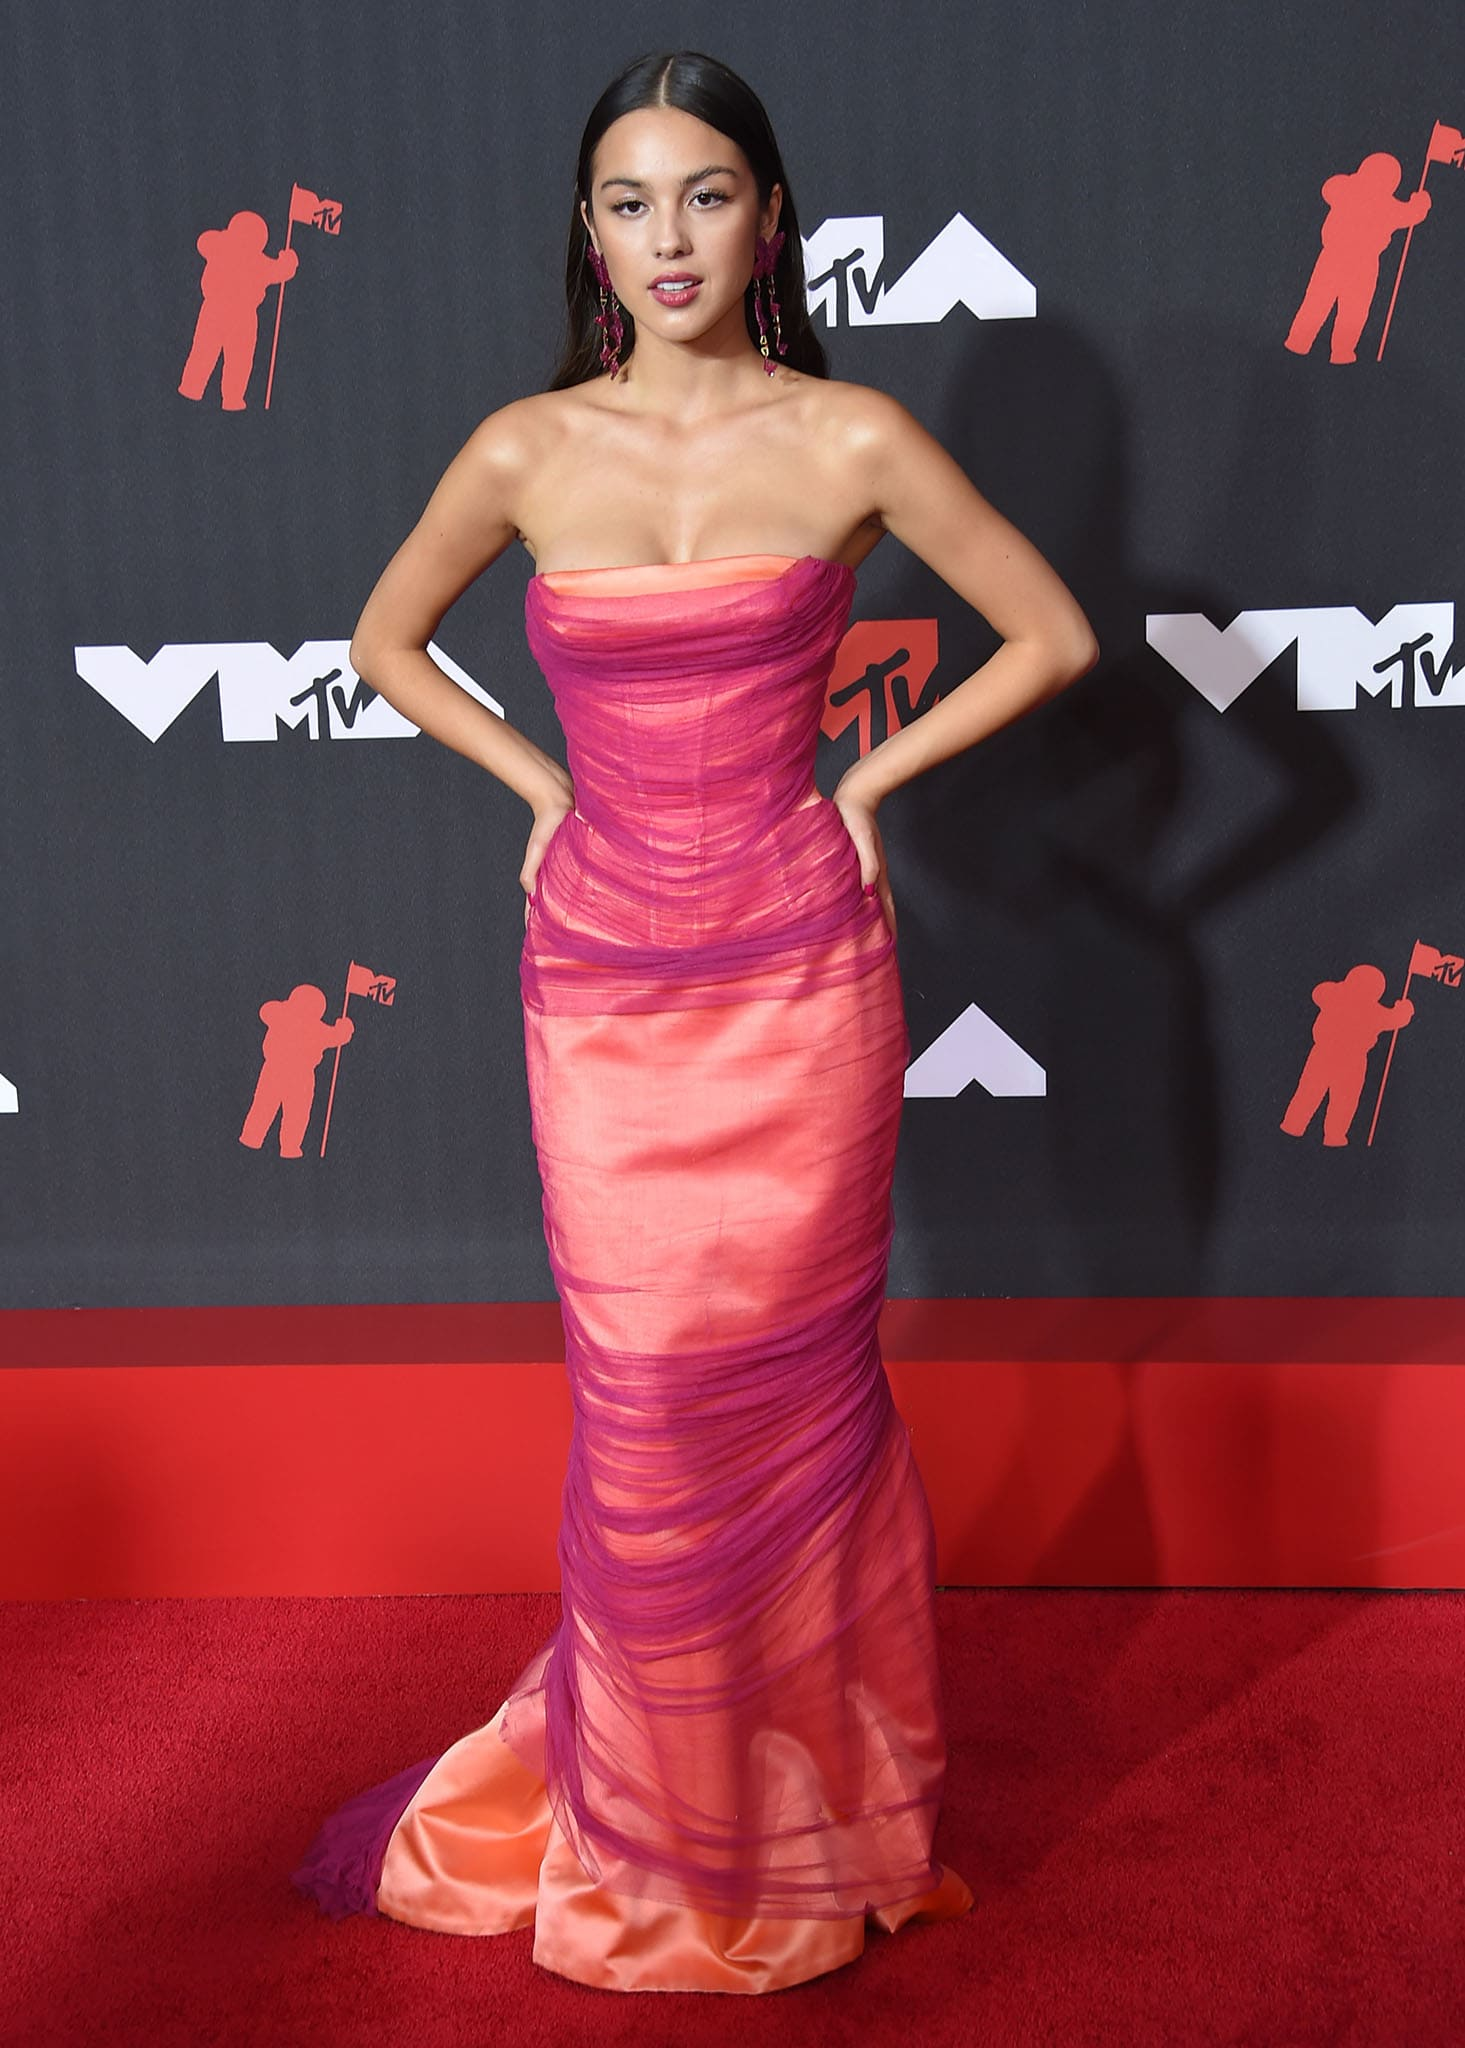 Olivia Rodrigo showcases her slim figure in a peach Atelier Versace gown with purple tulle overlay